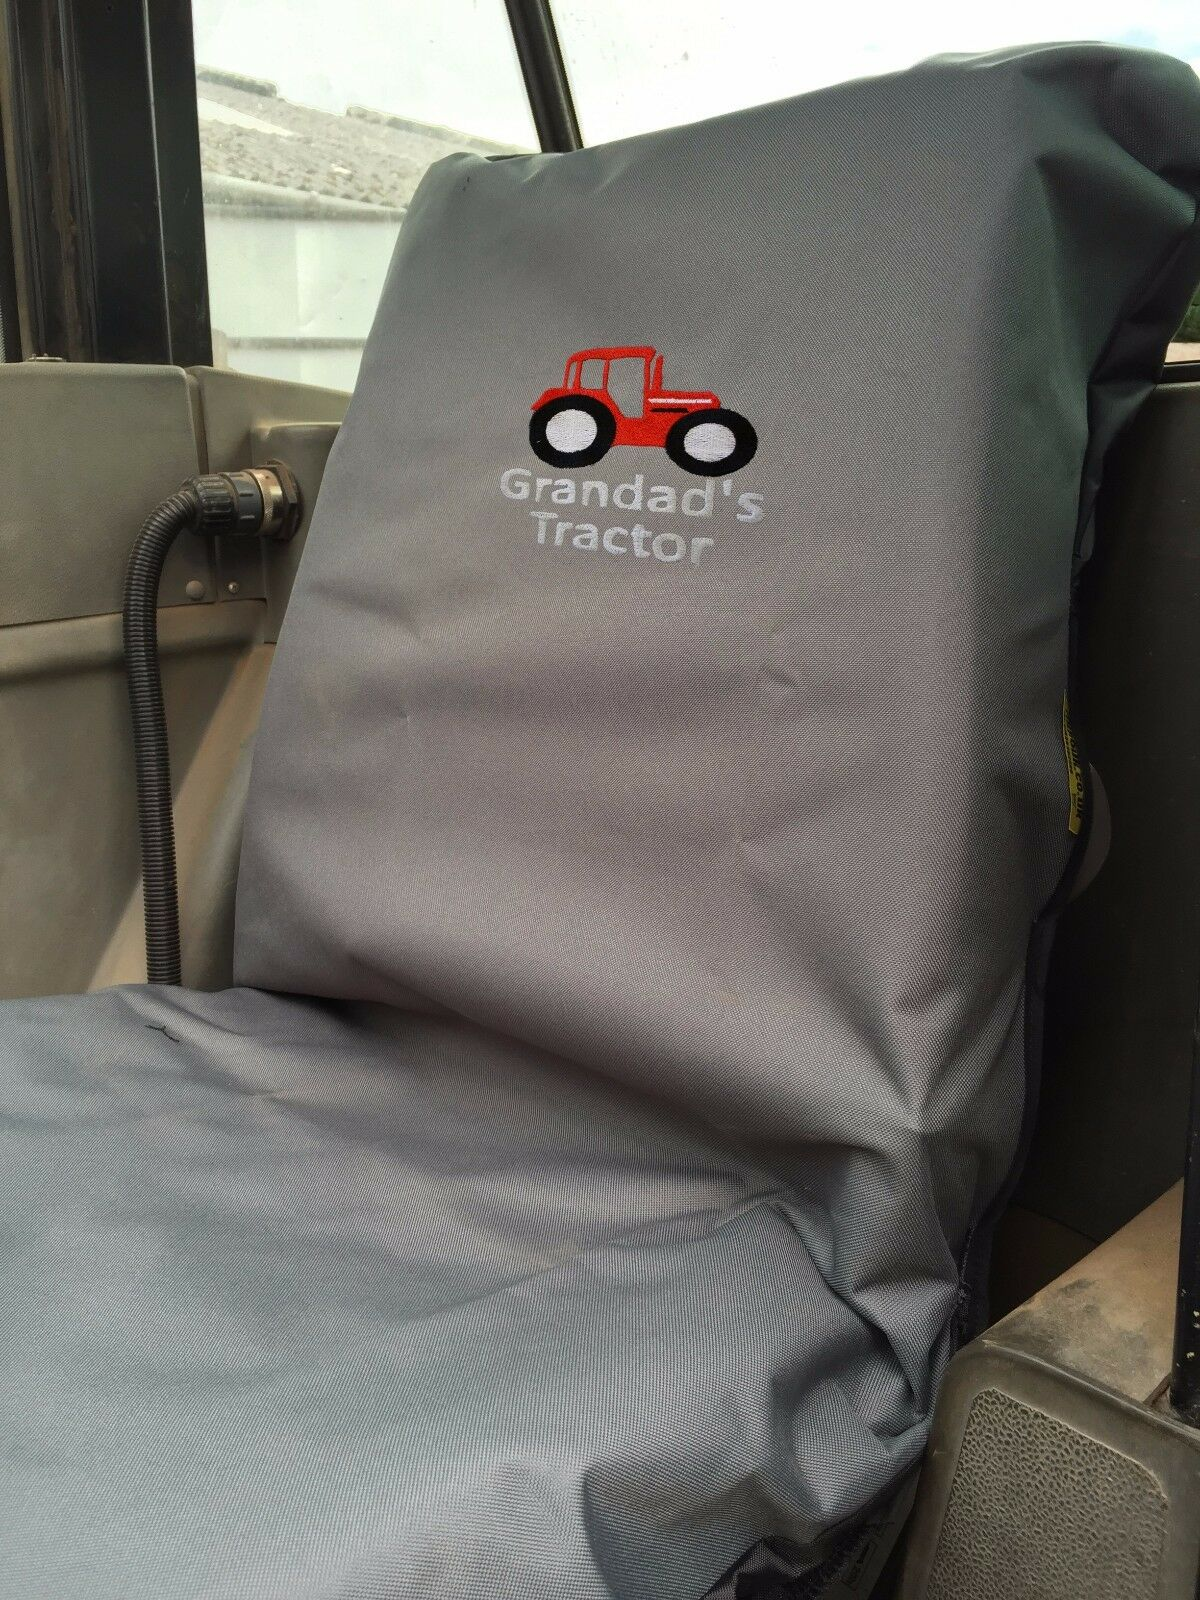 Grandad's Tractor  embroidered Seat Cover Waterproof Ideal Christmas present